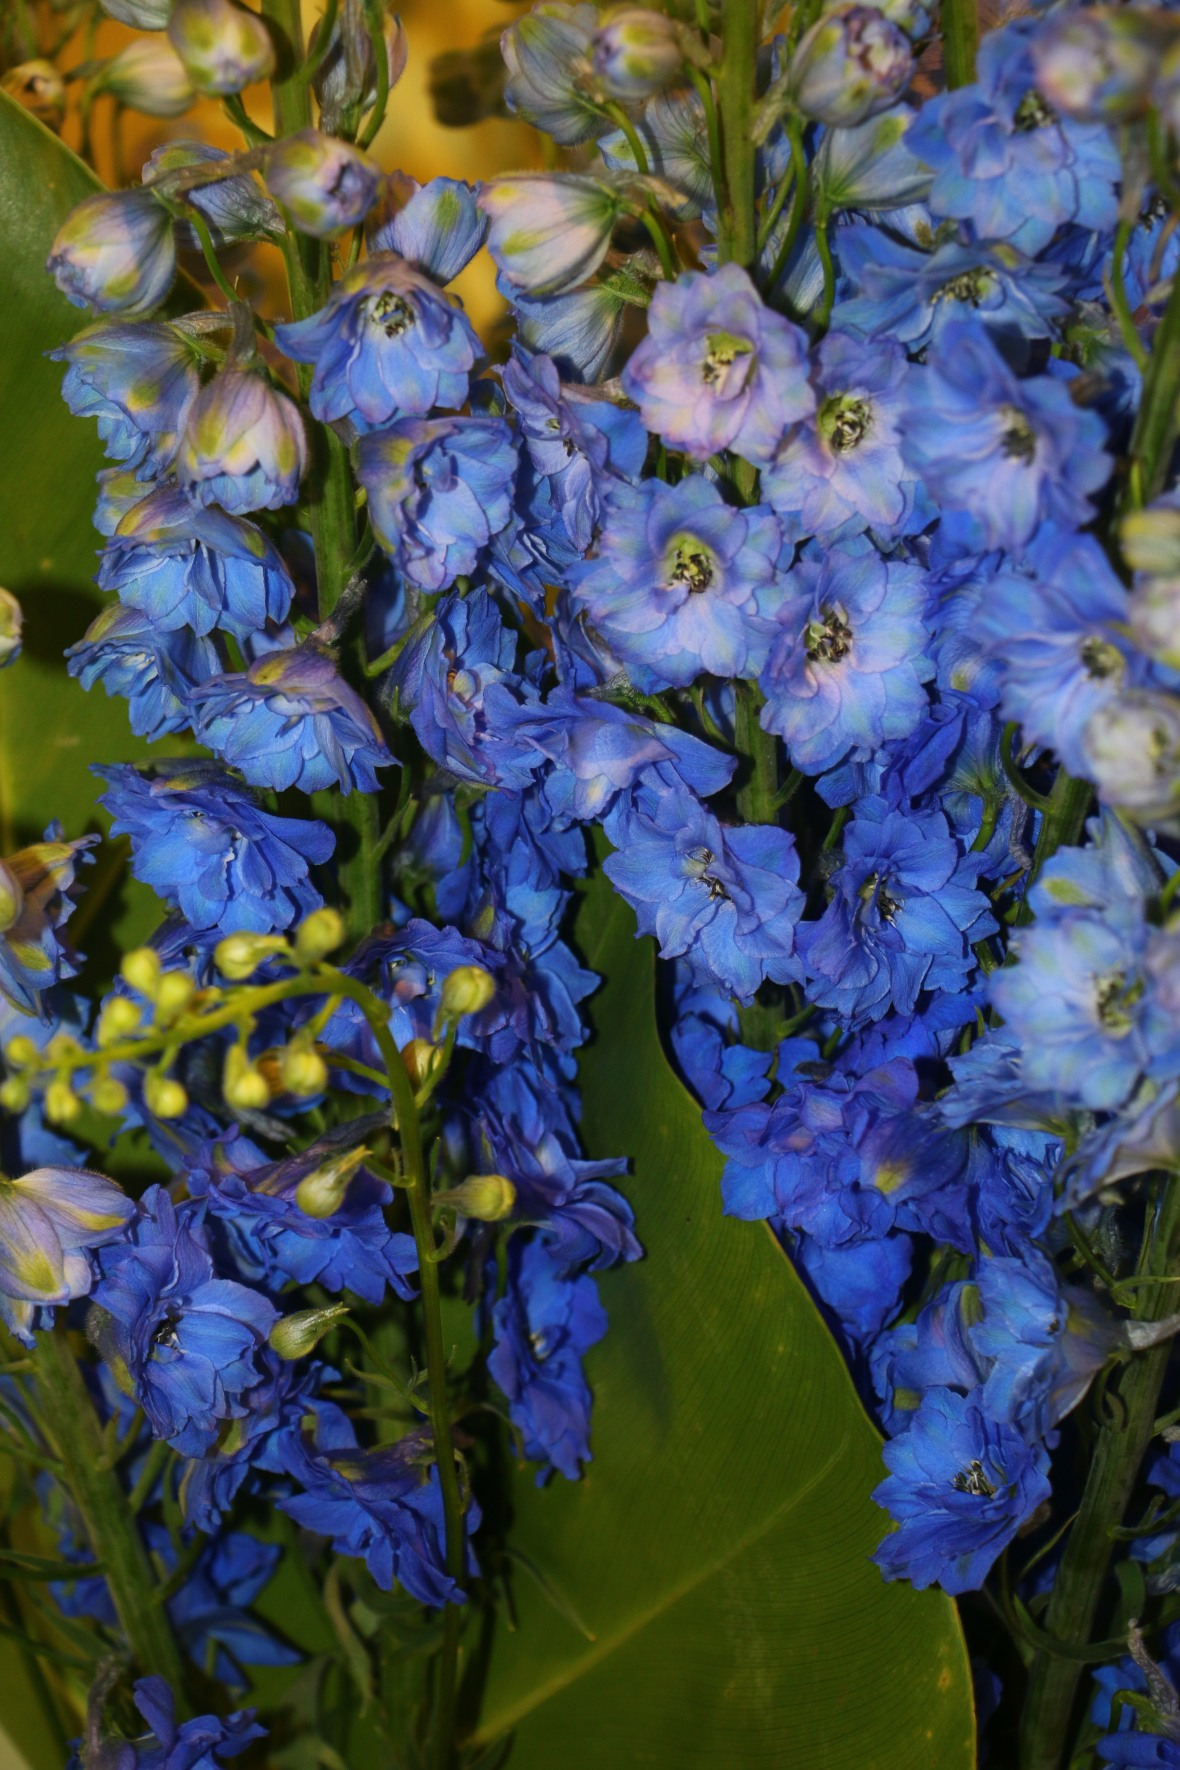 Floral Portrait Series: The Blue Delphiniums ala J Cellan Designs